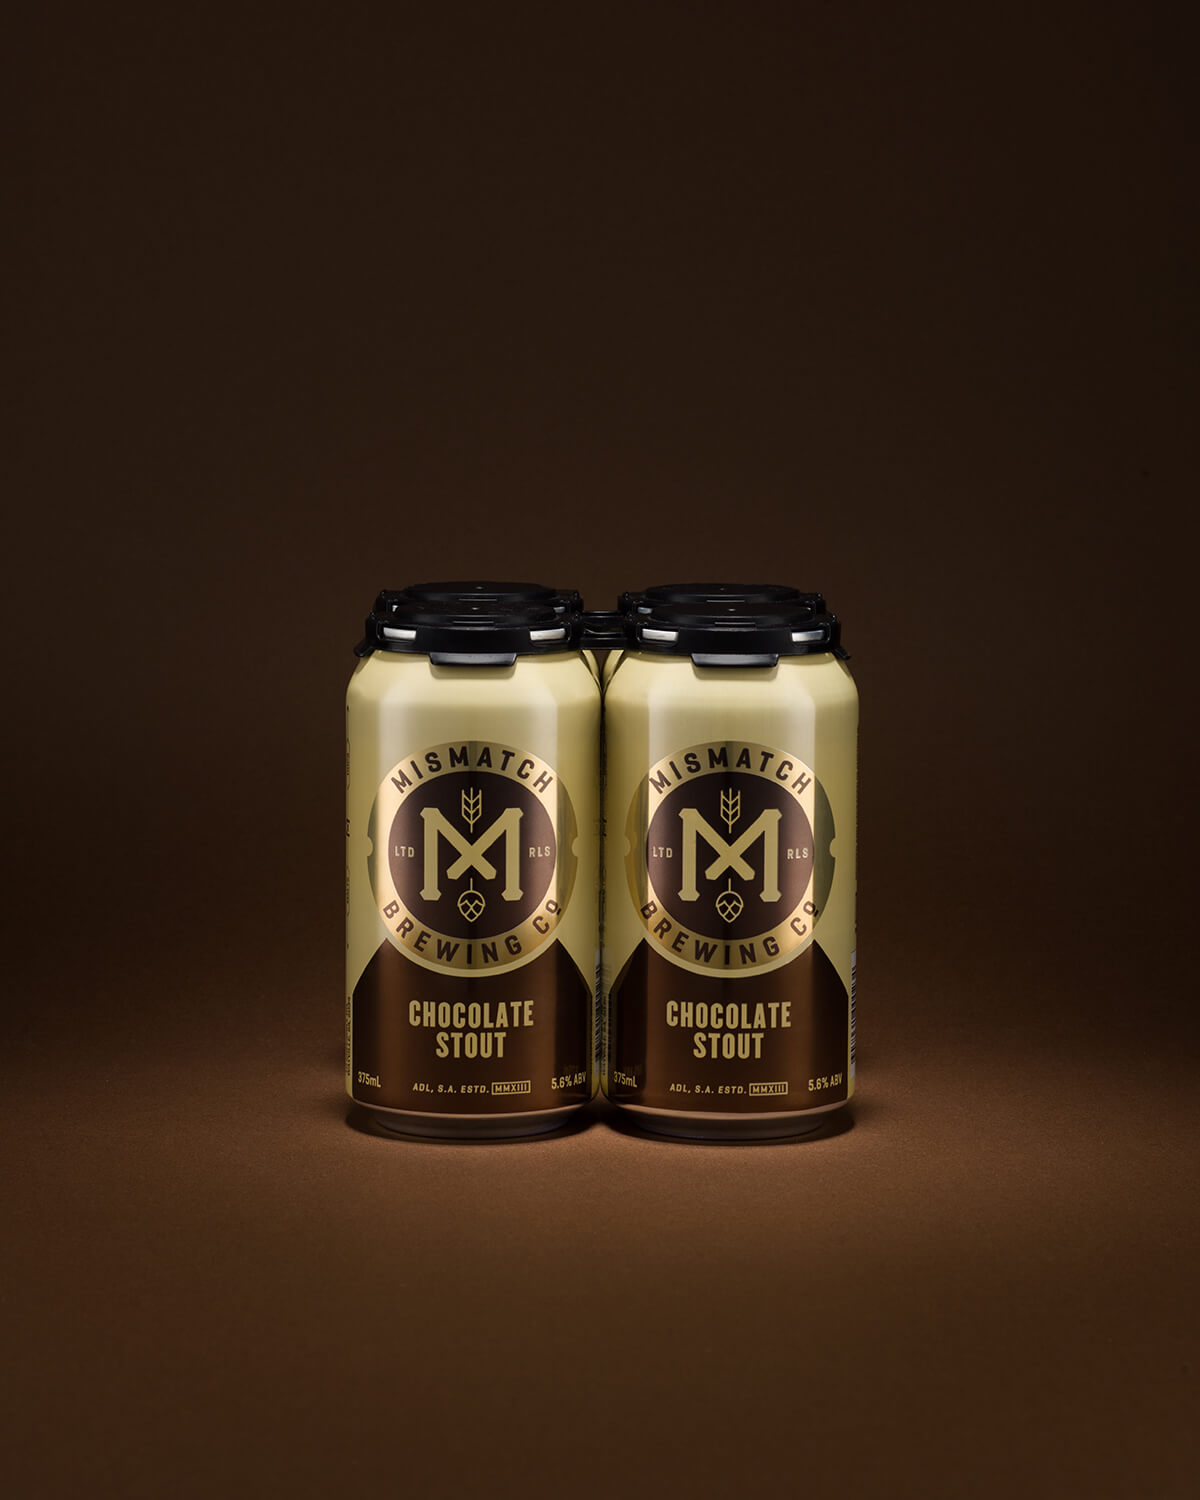 Mismatch Brewing Co image